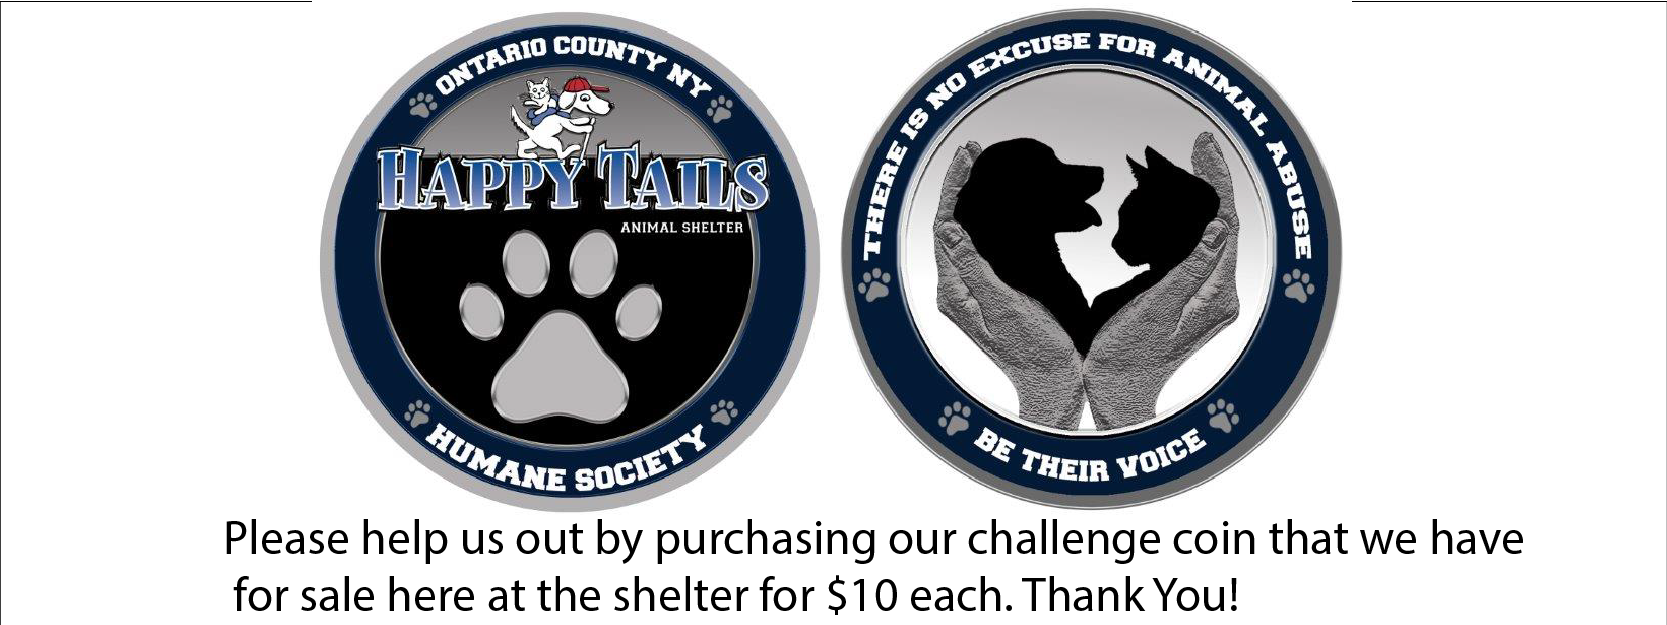 Please help us out by purchasing our challenge coin that we for sale here at the shelter for $10 each. Thank You!